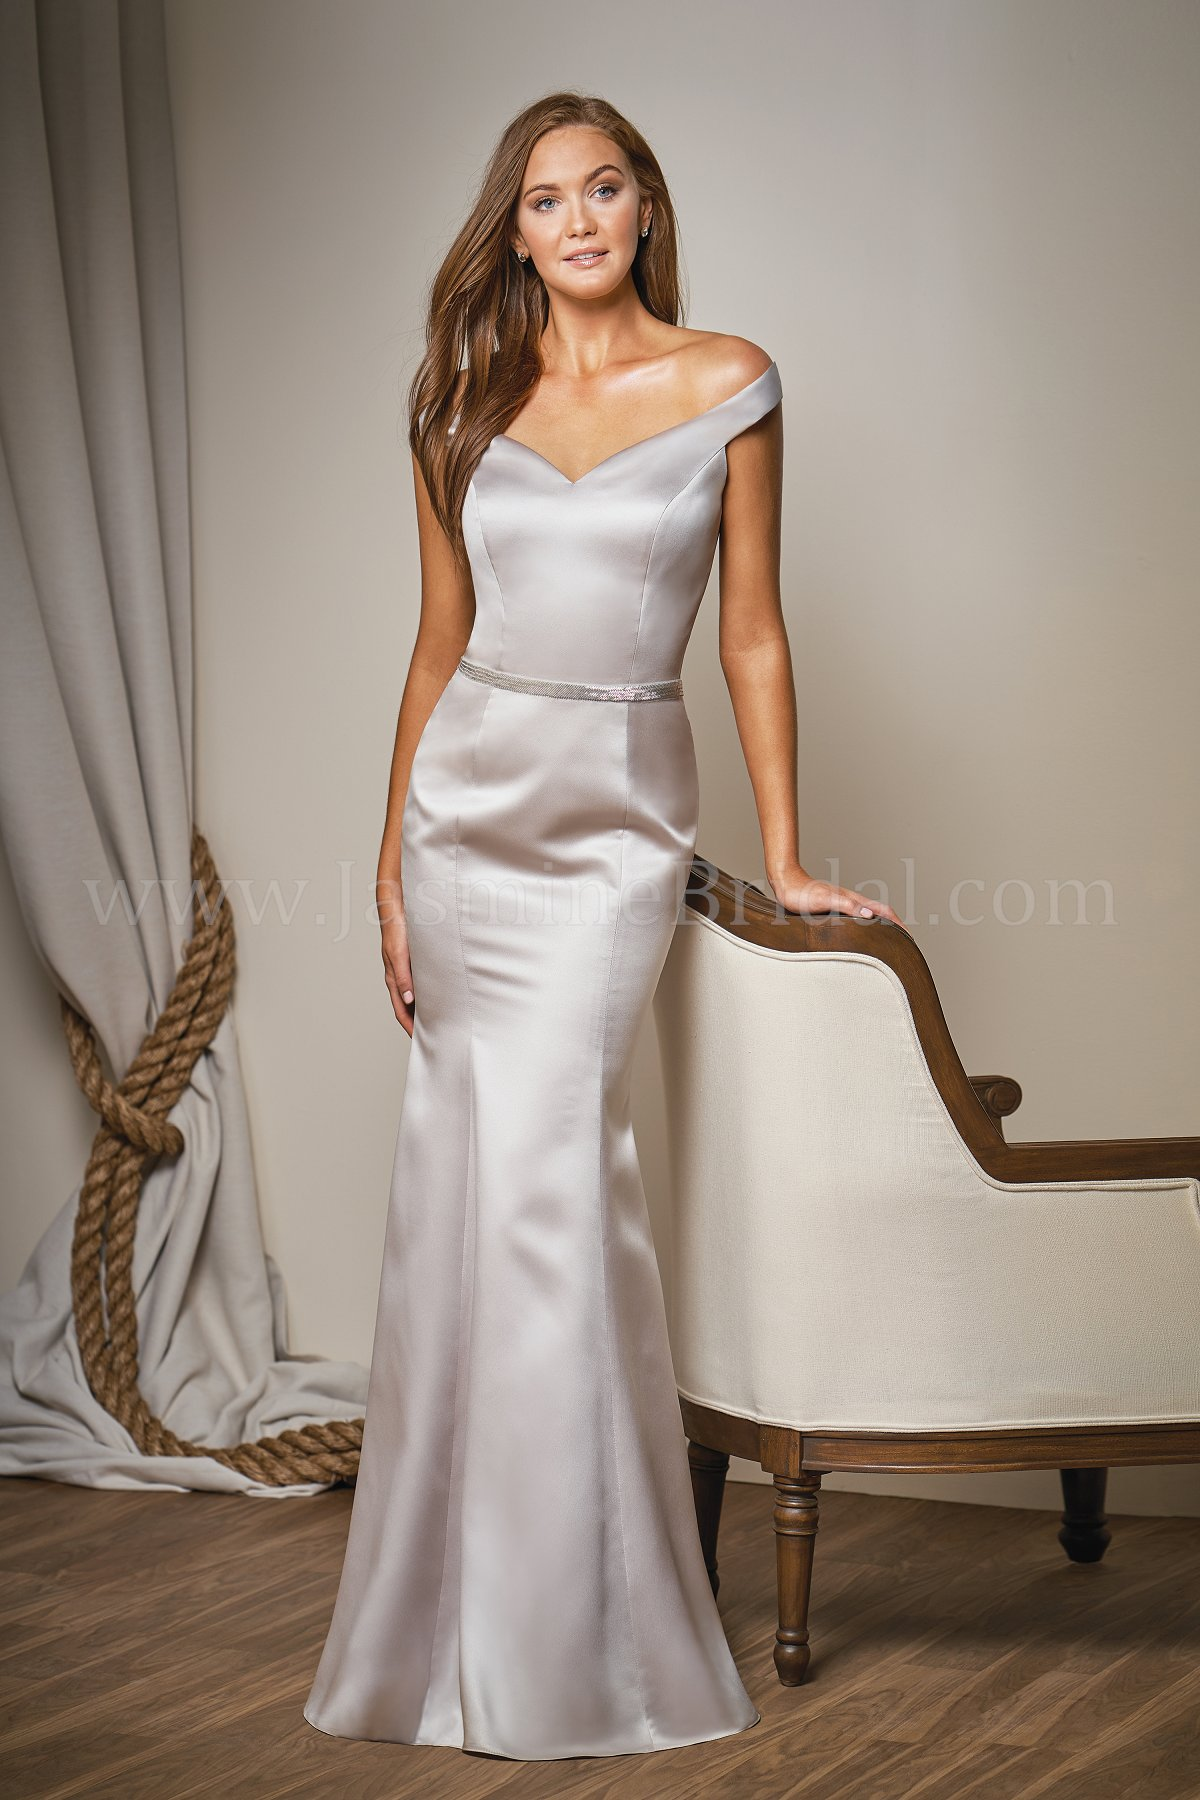 bridesmaid-dresses-L204011-F.jpg